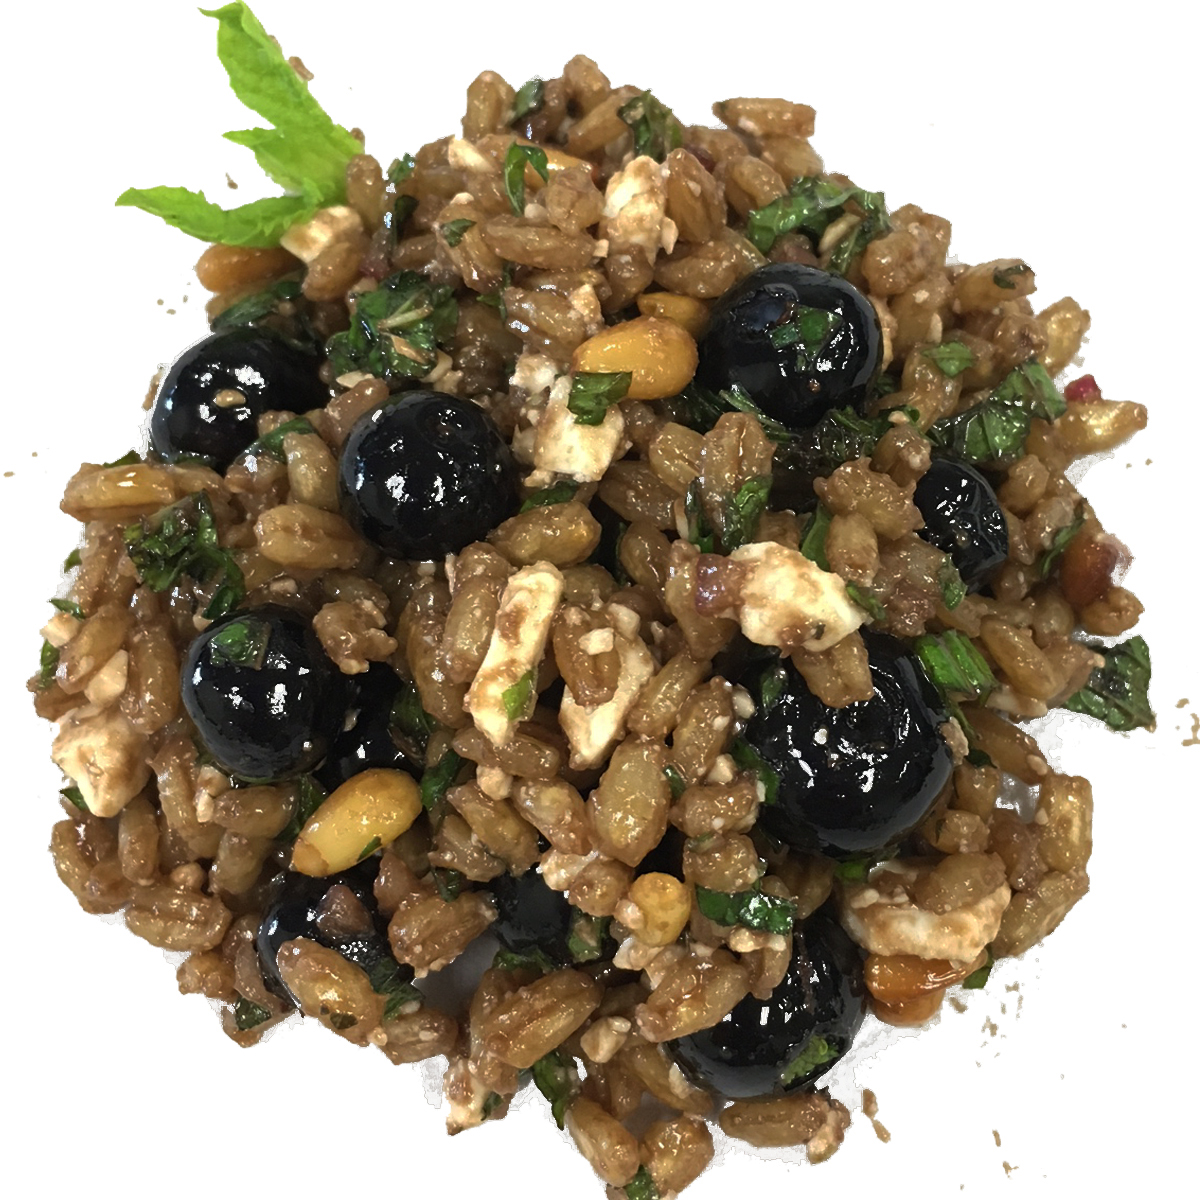 Pearl Barley Blueberry Pilaf with Mint & Feta - It's time for summer blueberries! We love the fresh fruity flavor they add to this satisfying but light summer pilaf made with barley, one of the oldest consumed grains in the world. It's high fiber content, vitamins, minerals, and antioxidants make barley one of the best whole grain choices. Get your fiber and antioxidents the easy way.Dressing: enfuso blueberry balsamic vinegar, enfuso lemon olive oil, cold pressed ginger juiceCalories per serving: 210Price/lb: $10.50